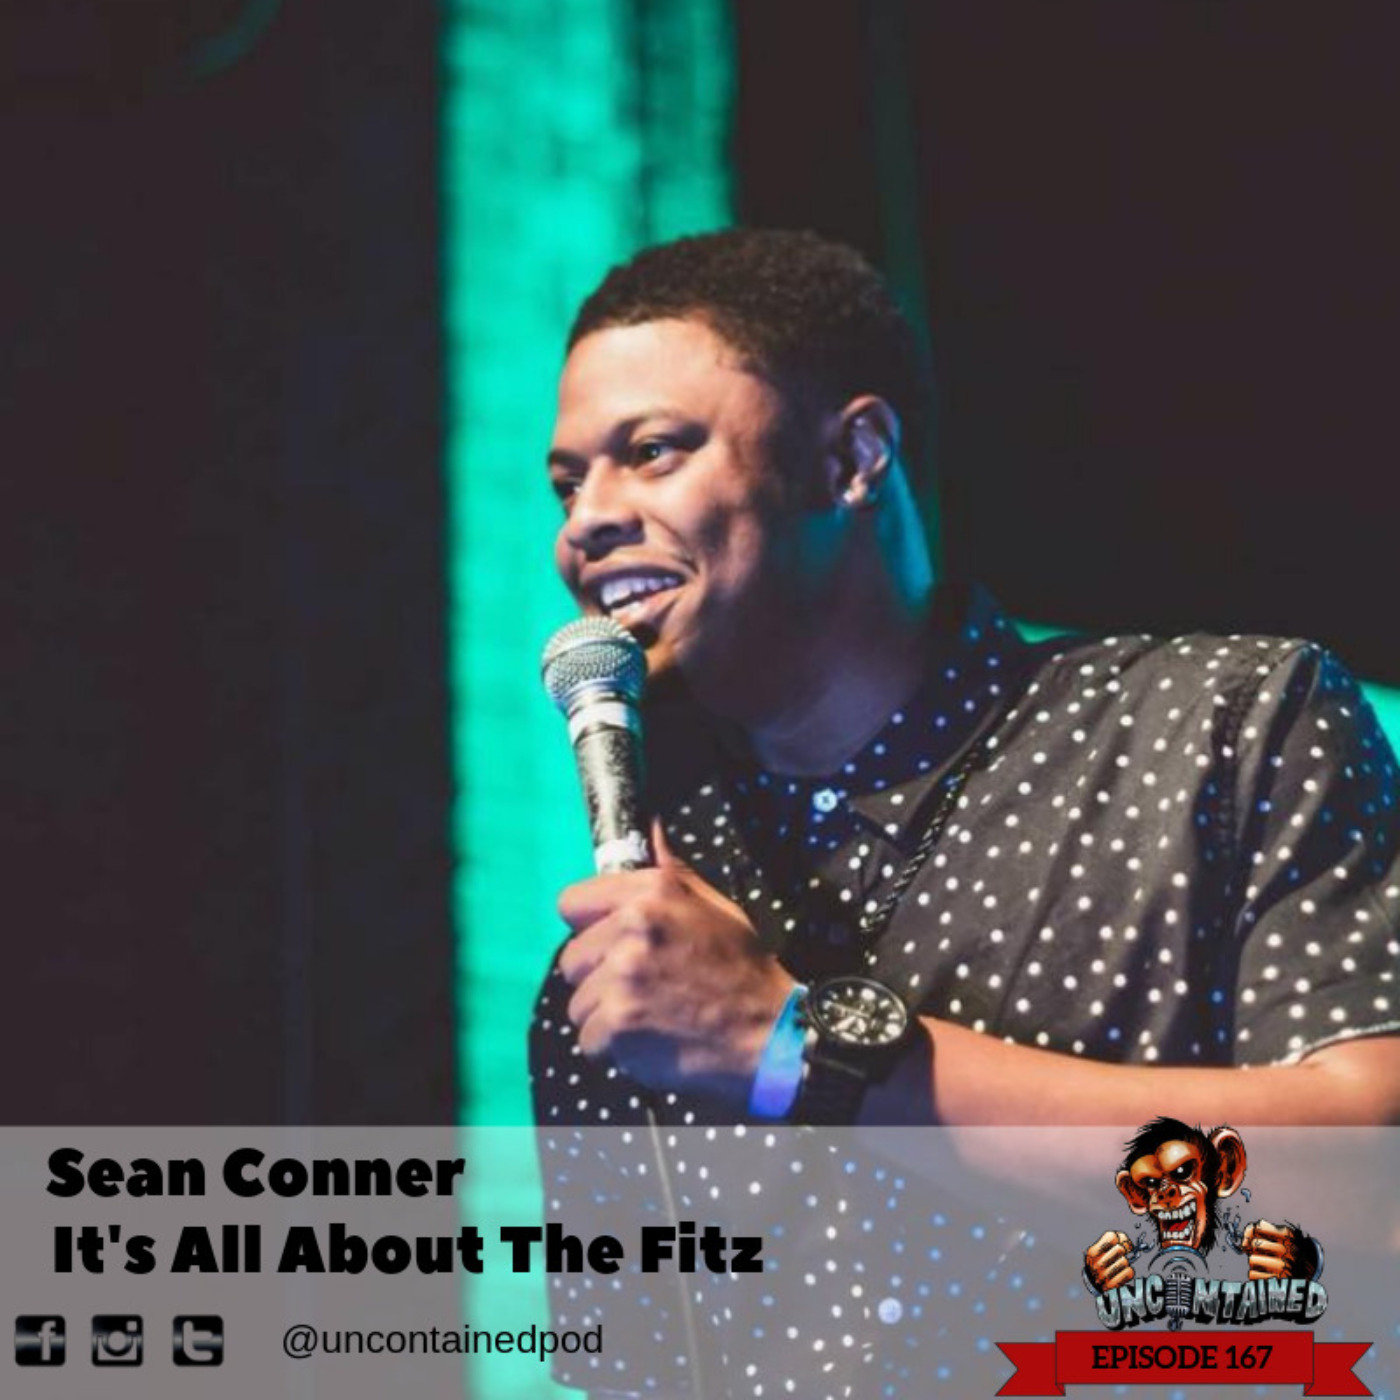 Episode 167: Sean Conner - It's All About The Fitz